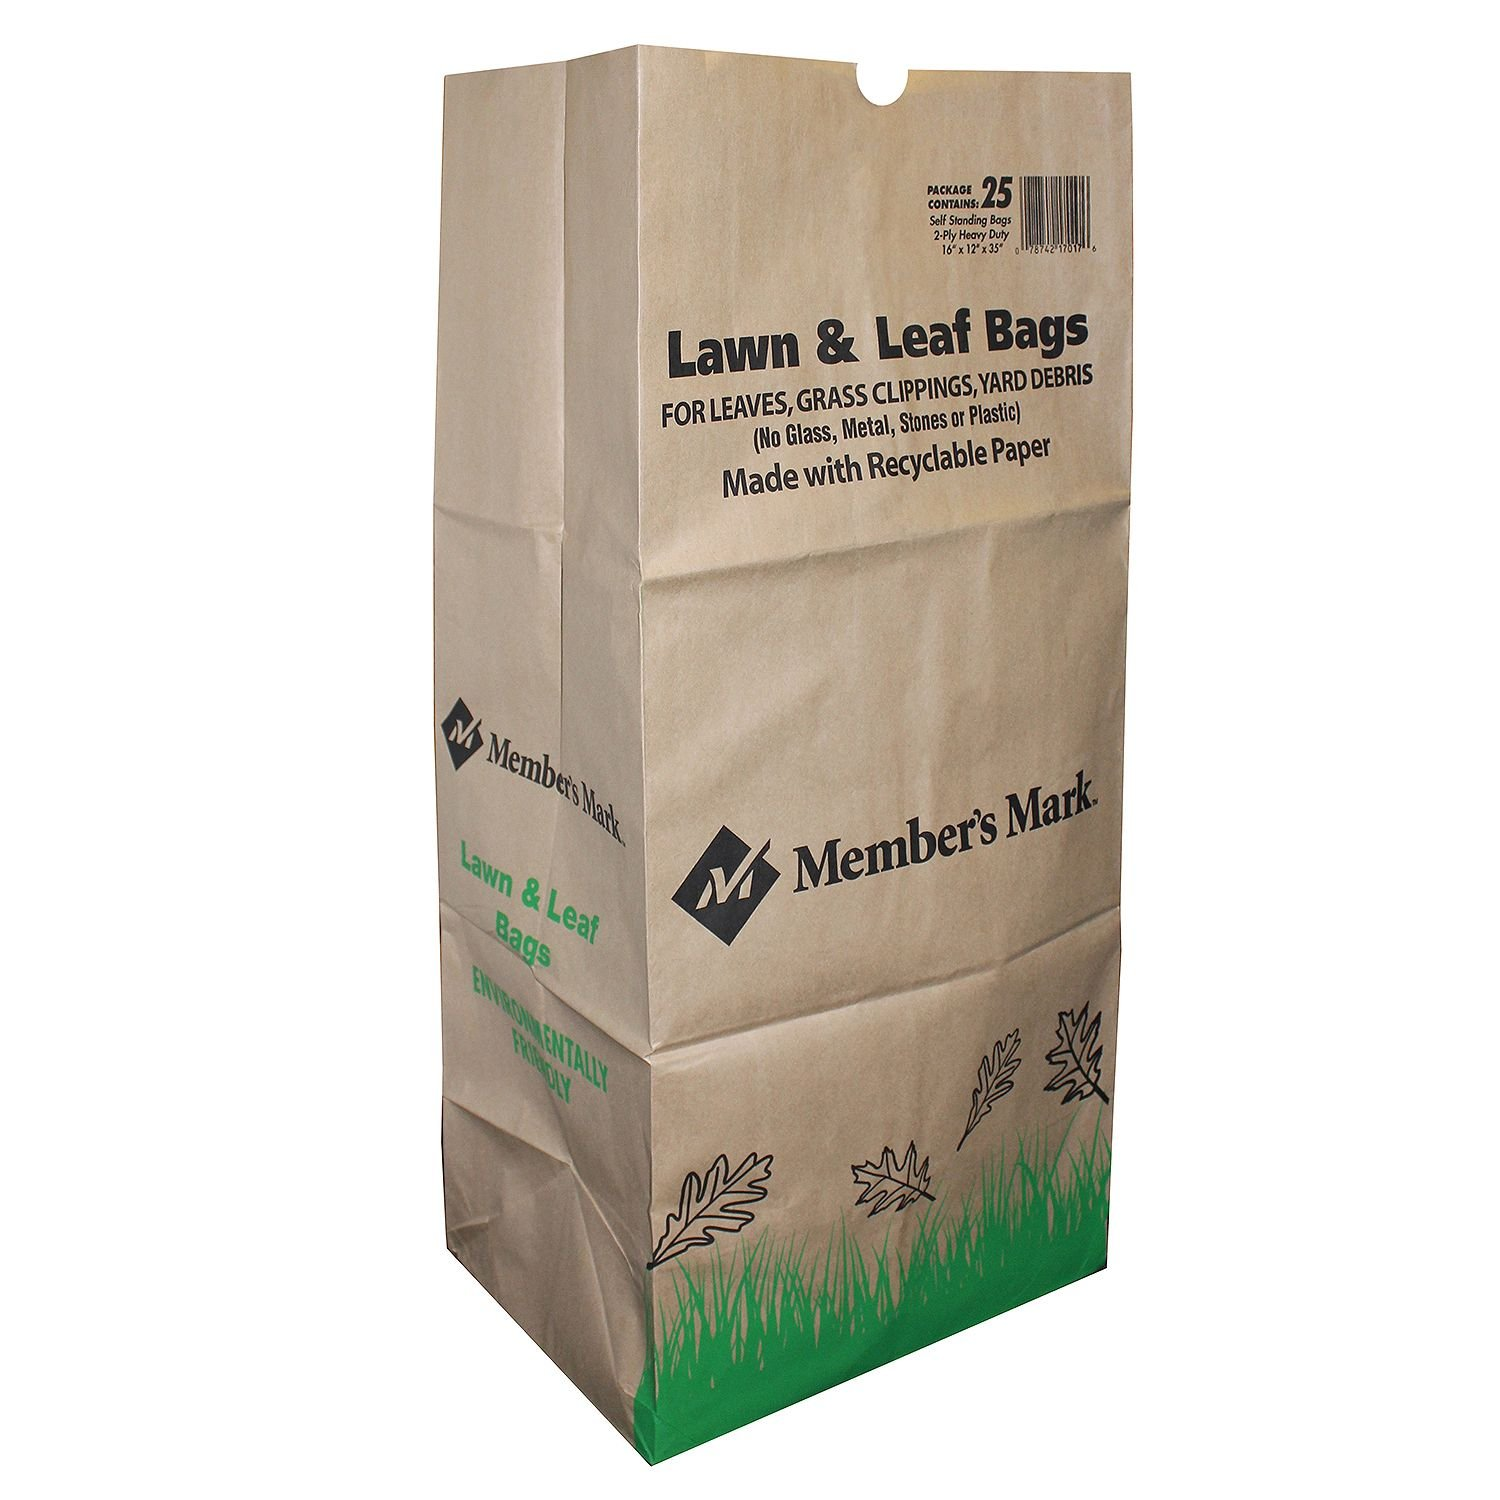 Member's Mark 30-Gallon Lawn & Leaf Bags, 5 Pack Member's Mark